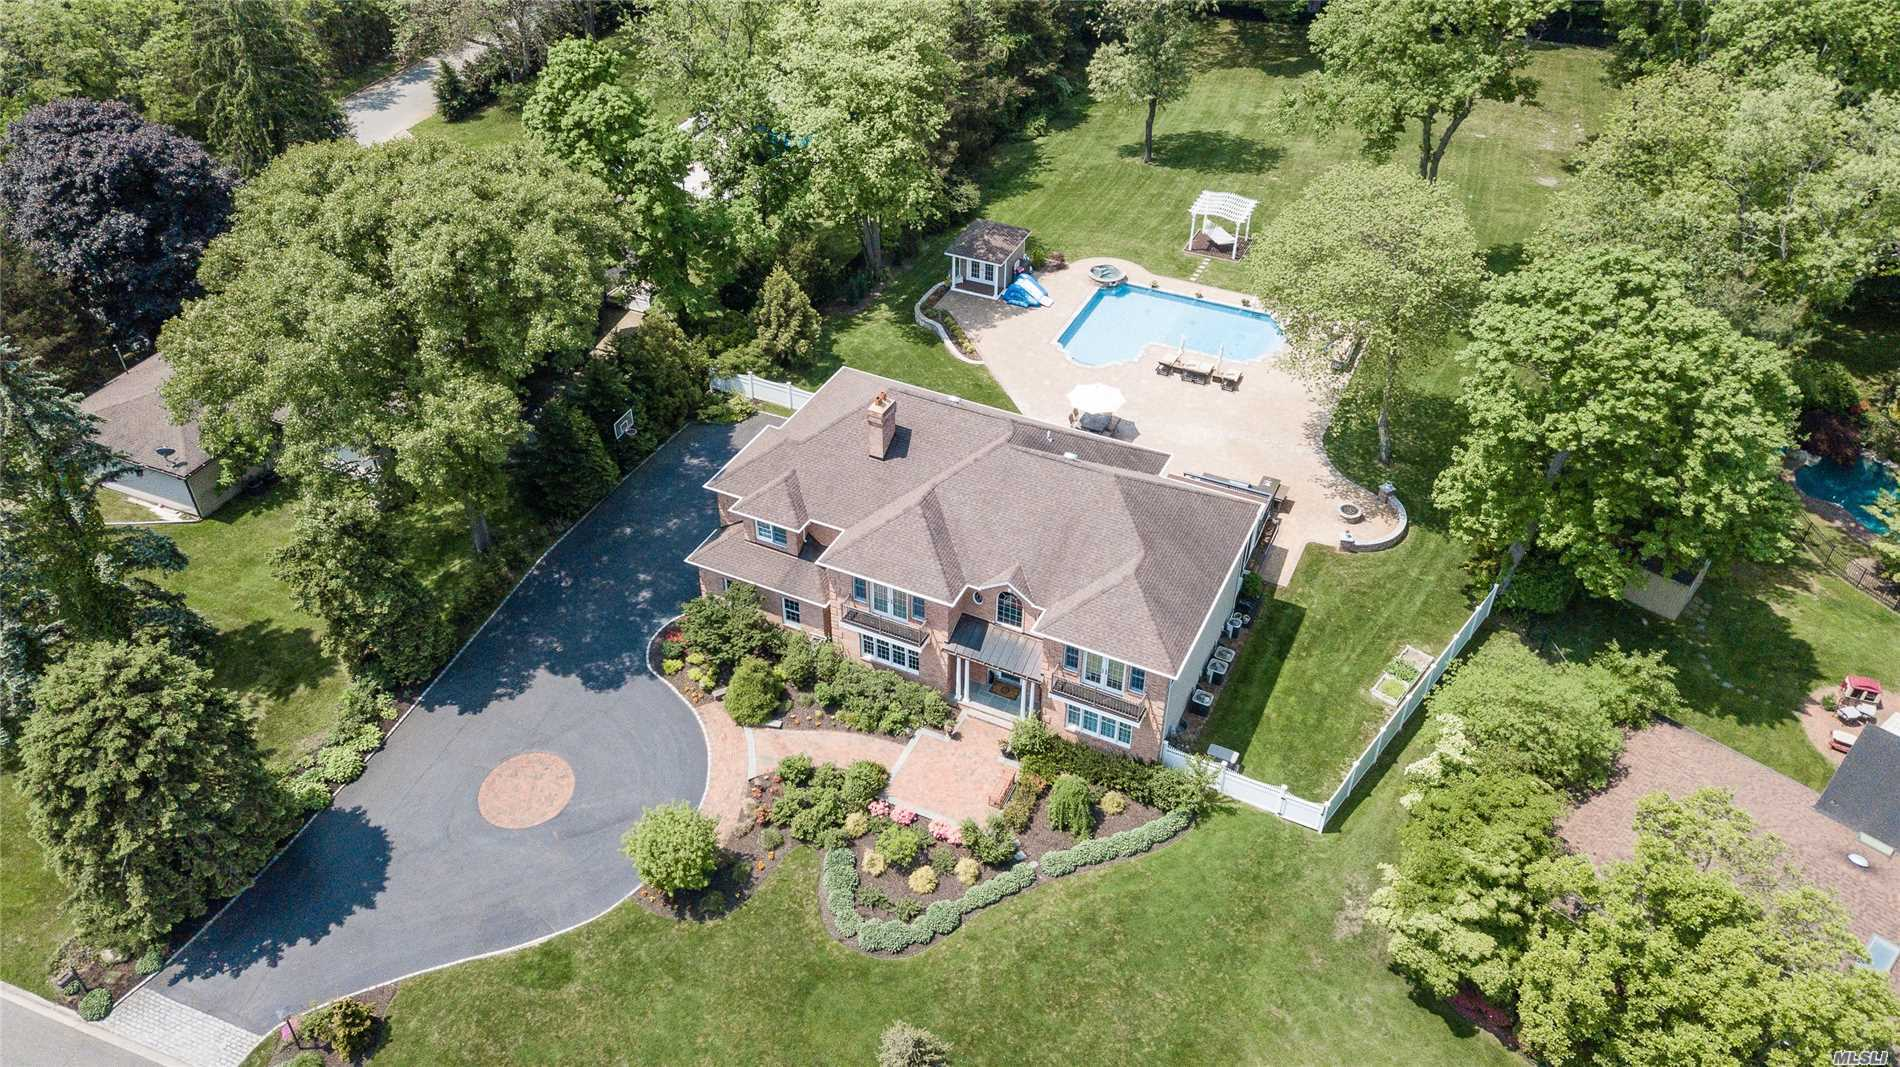 Pristine Custom 6-Bedroom, 4.5-Bath Center Hall Brick Colonial Home. 2 Story Entry Foyer, Generously Proportioned Rooms W/Open Layout. Gourmet Eat-In-Kitchen, Banquet Size Dining Room. Radiant Heat In Kitchen/Baths. Flat Fenced Property - New Heated Saltwater Pool, Overflow Spa And Firepit. Professionally Landscaped. Room For Tennis Court. New Generator  Walt Whitman Elementary, Hbt Middle School. Sellers Will Pay First Year Taxes $42K